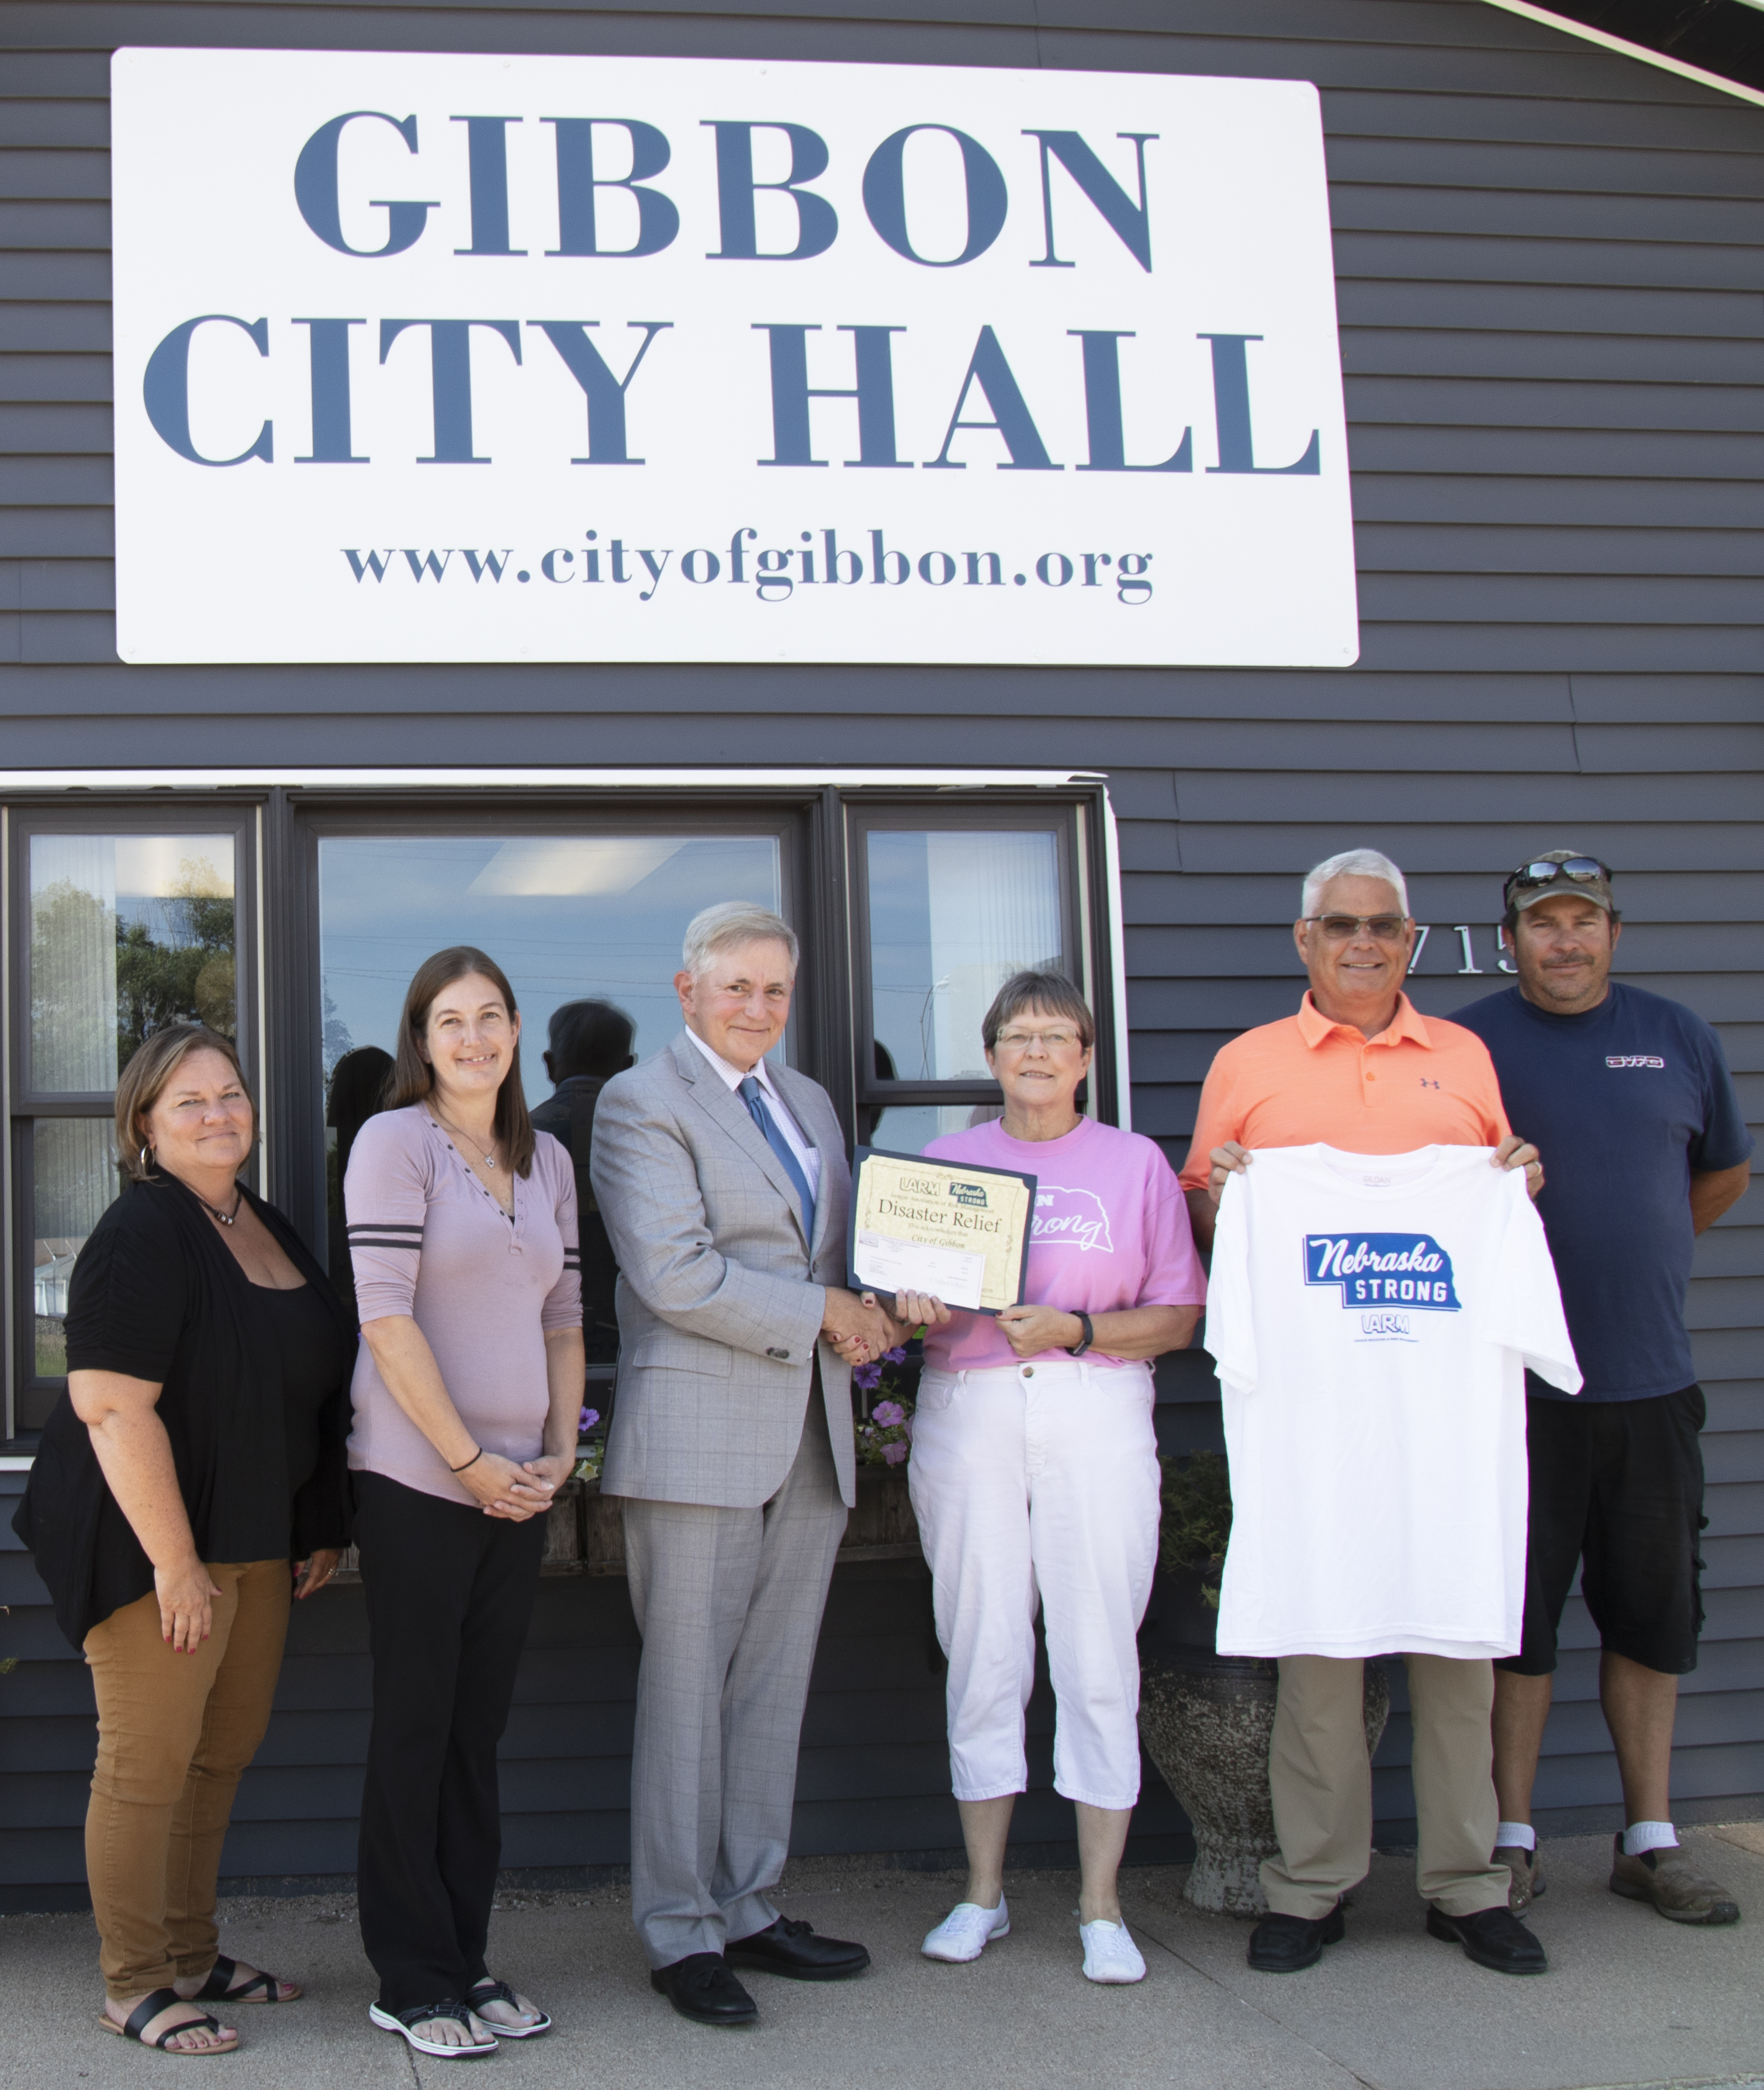 City of Gibbon awarded $500 LARM Disaster Funds